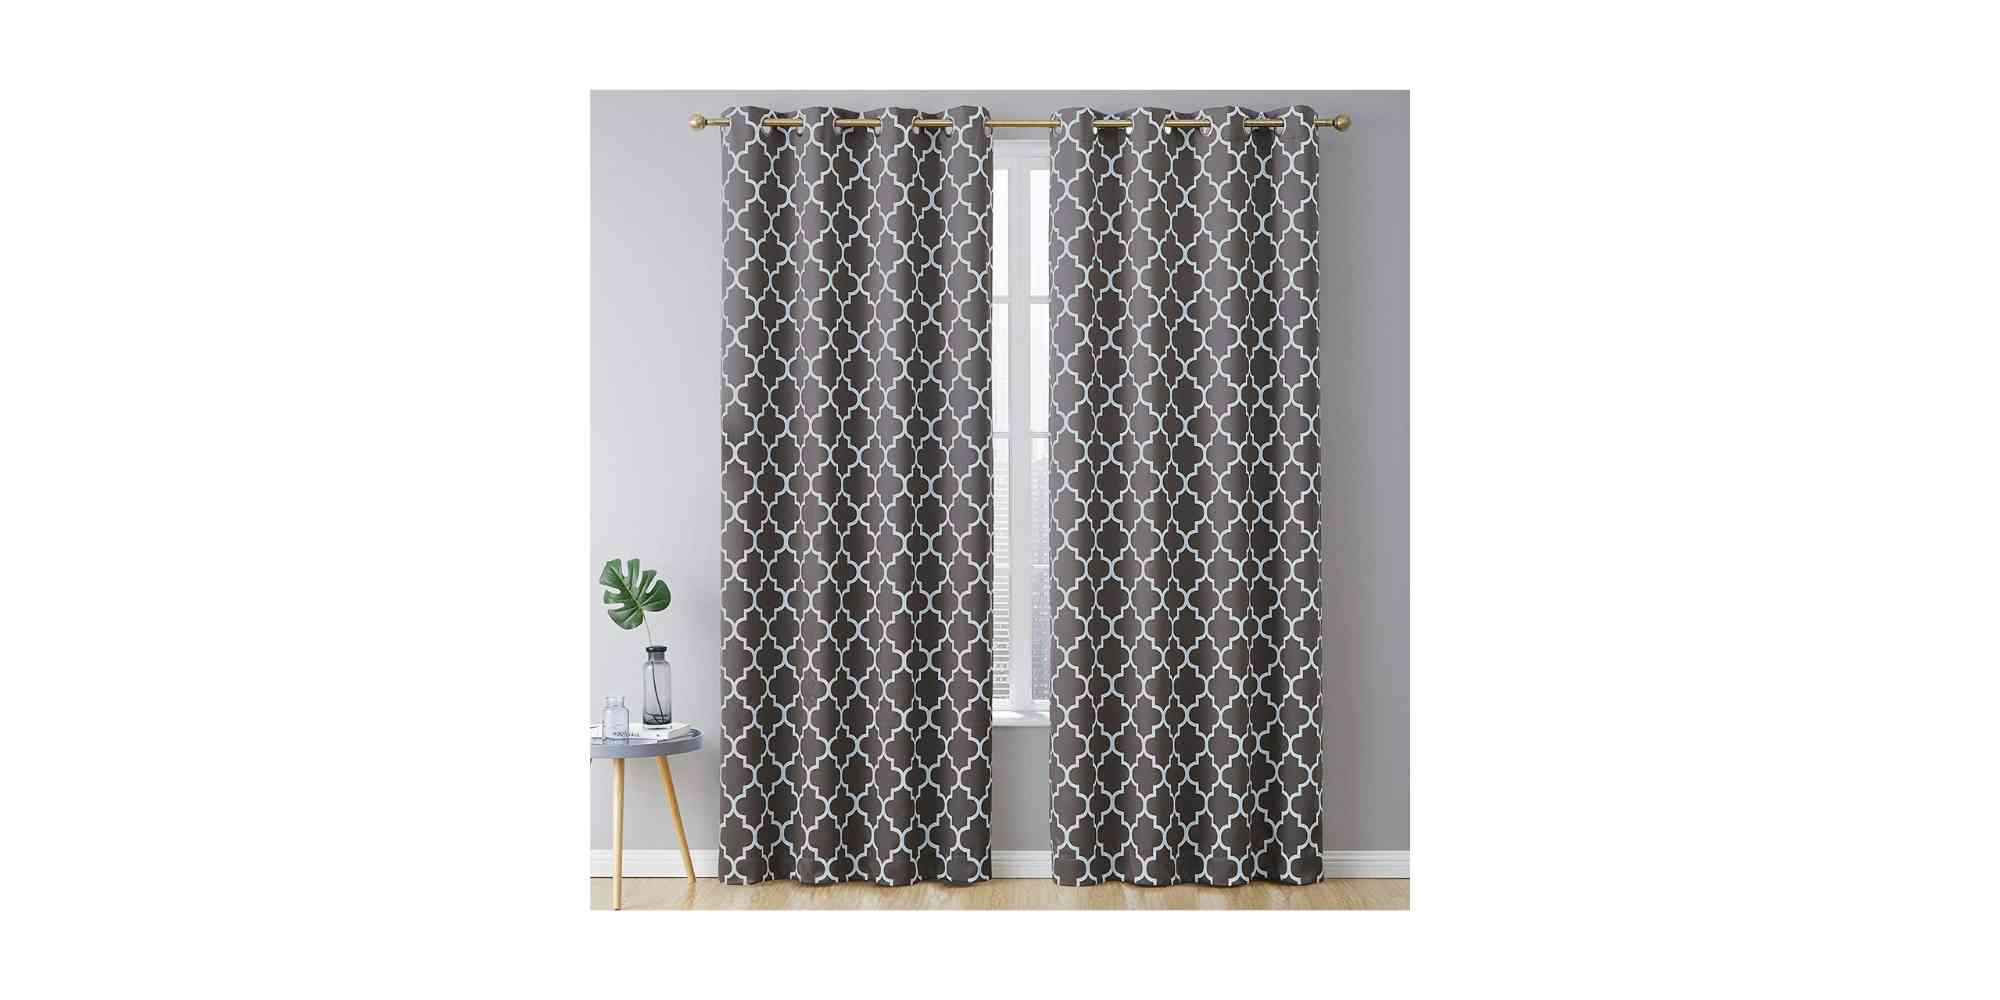 HLC.ME Lattice Print Pattern Thermal Insulated Blackout Room Darkening Energy Efficient Window Curtain